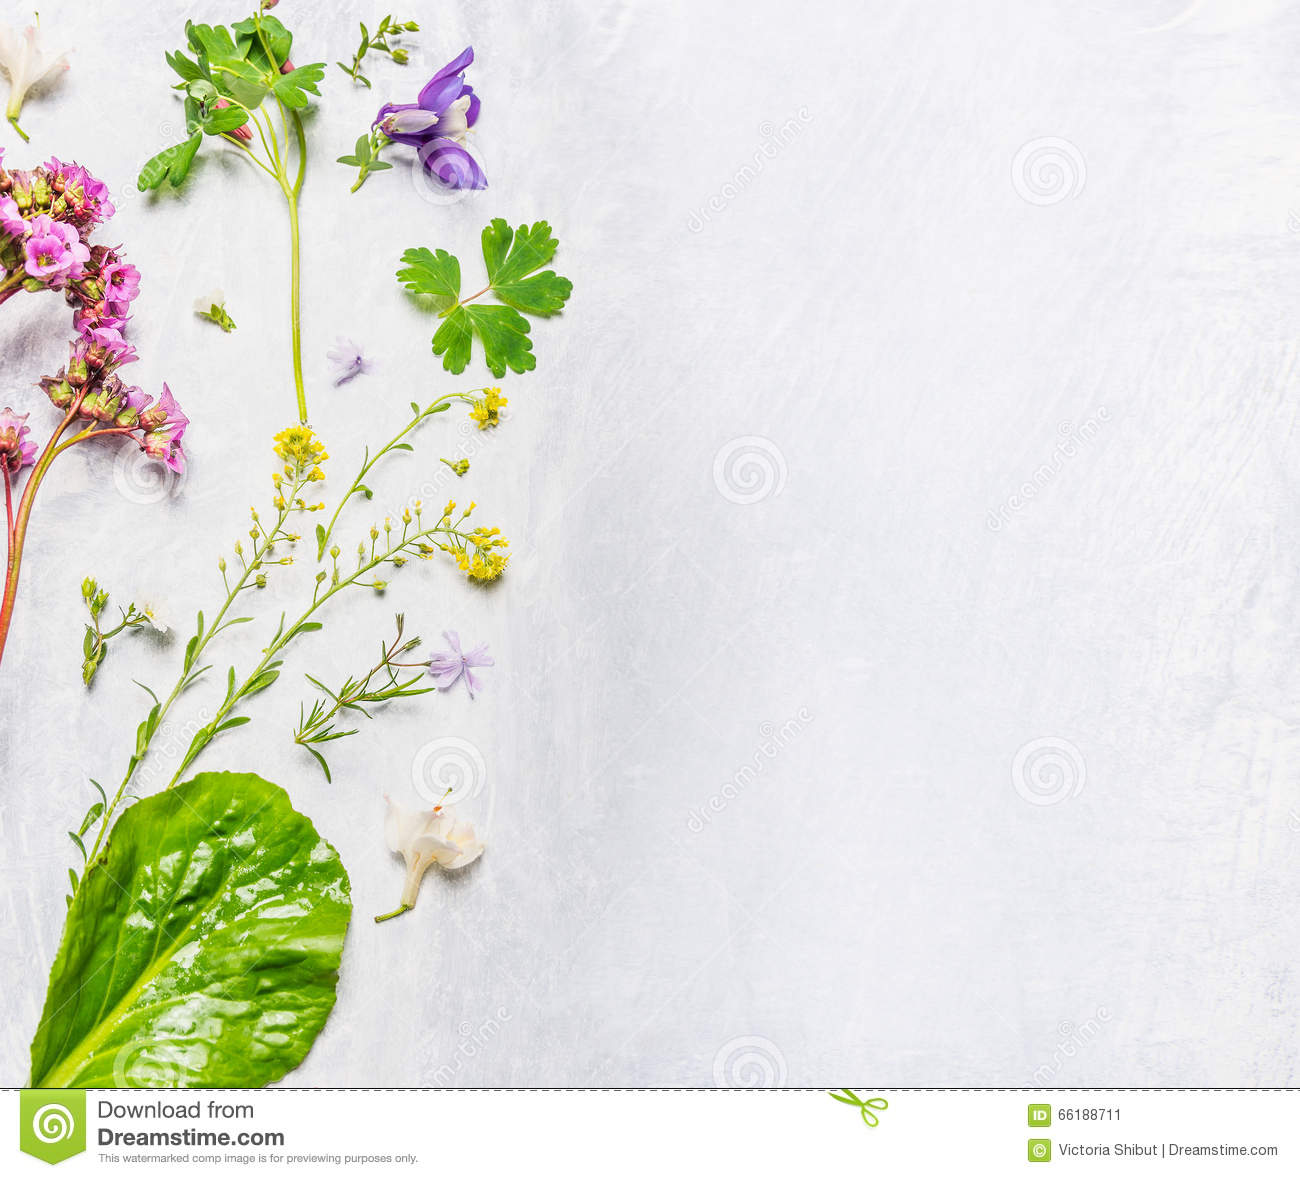 Plants for spring and summer - Various Of Spring Or Summer Flowers And Plants On Light Wooden Background Top View